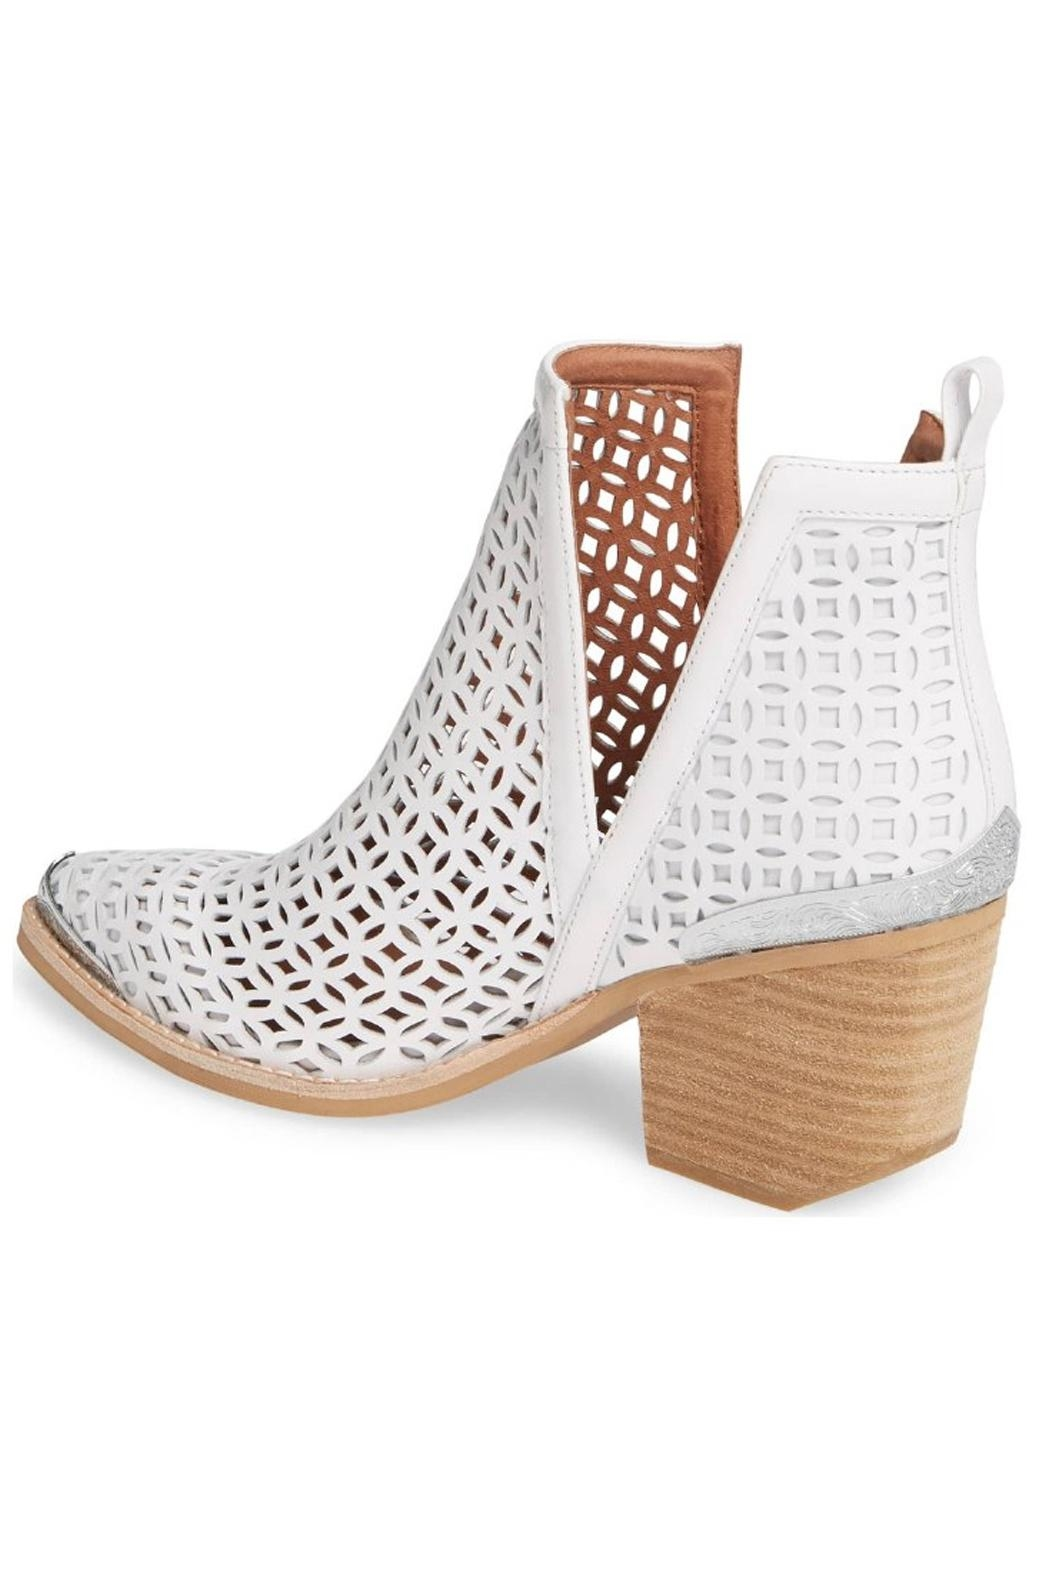 Jeffrey Campbell White Perforated Booties - Front Full Image